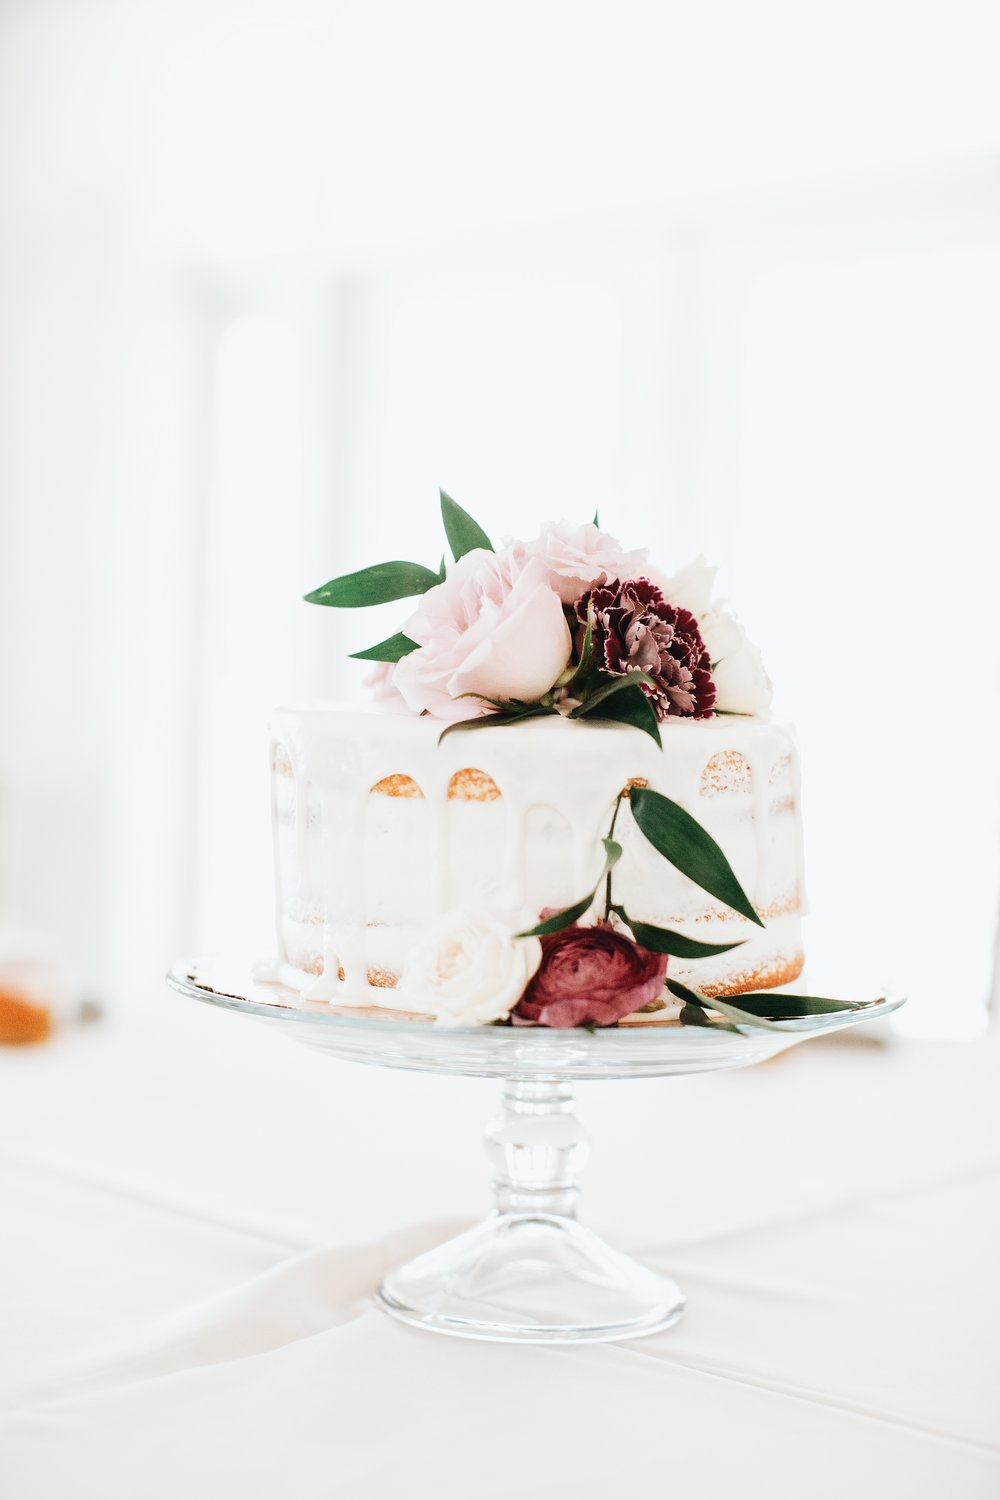 Public naked Cake with donut drip